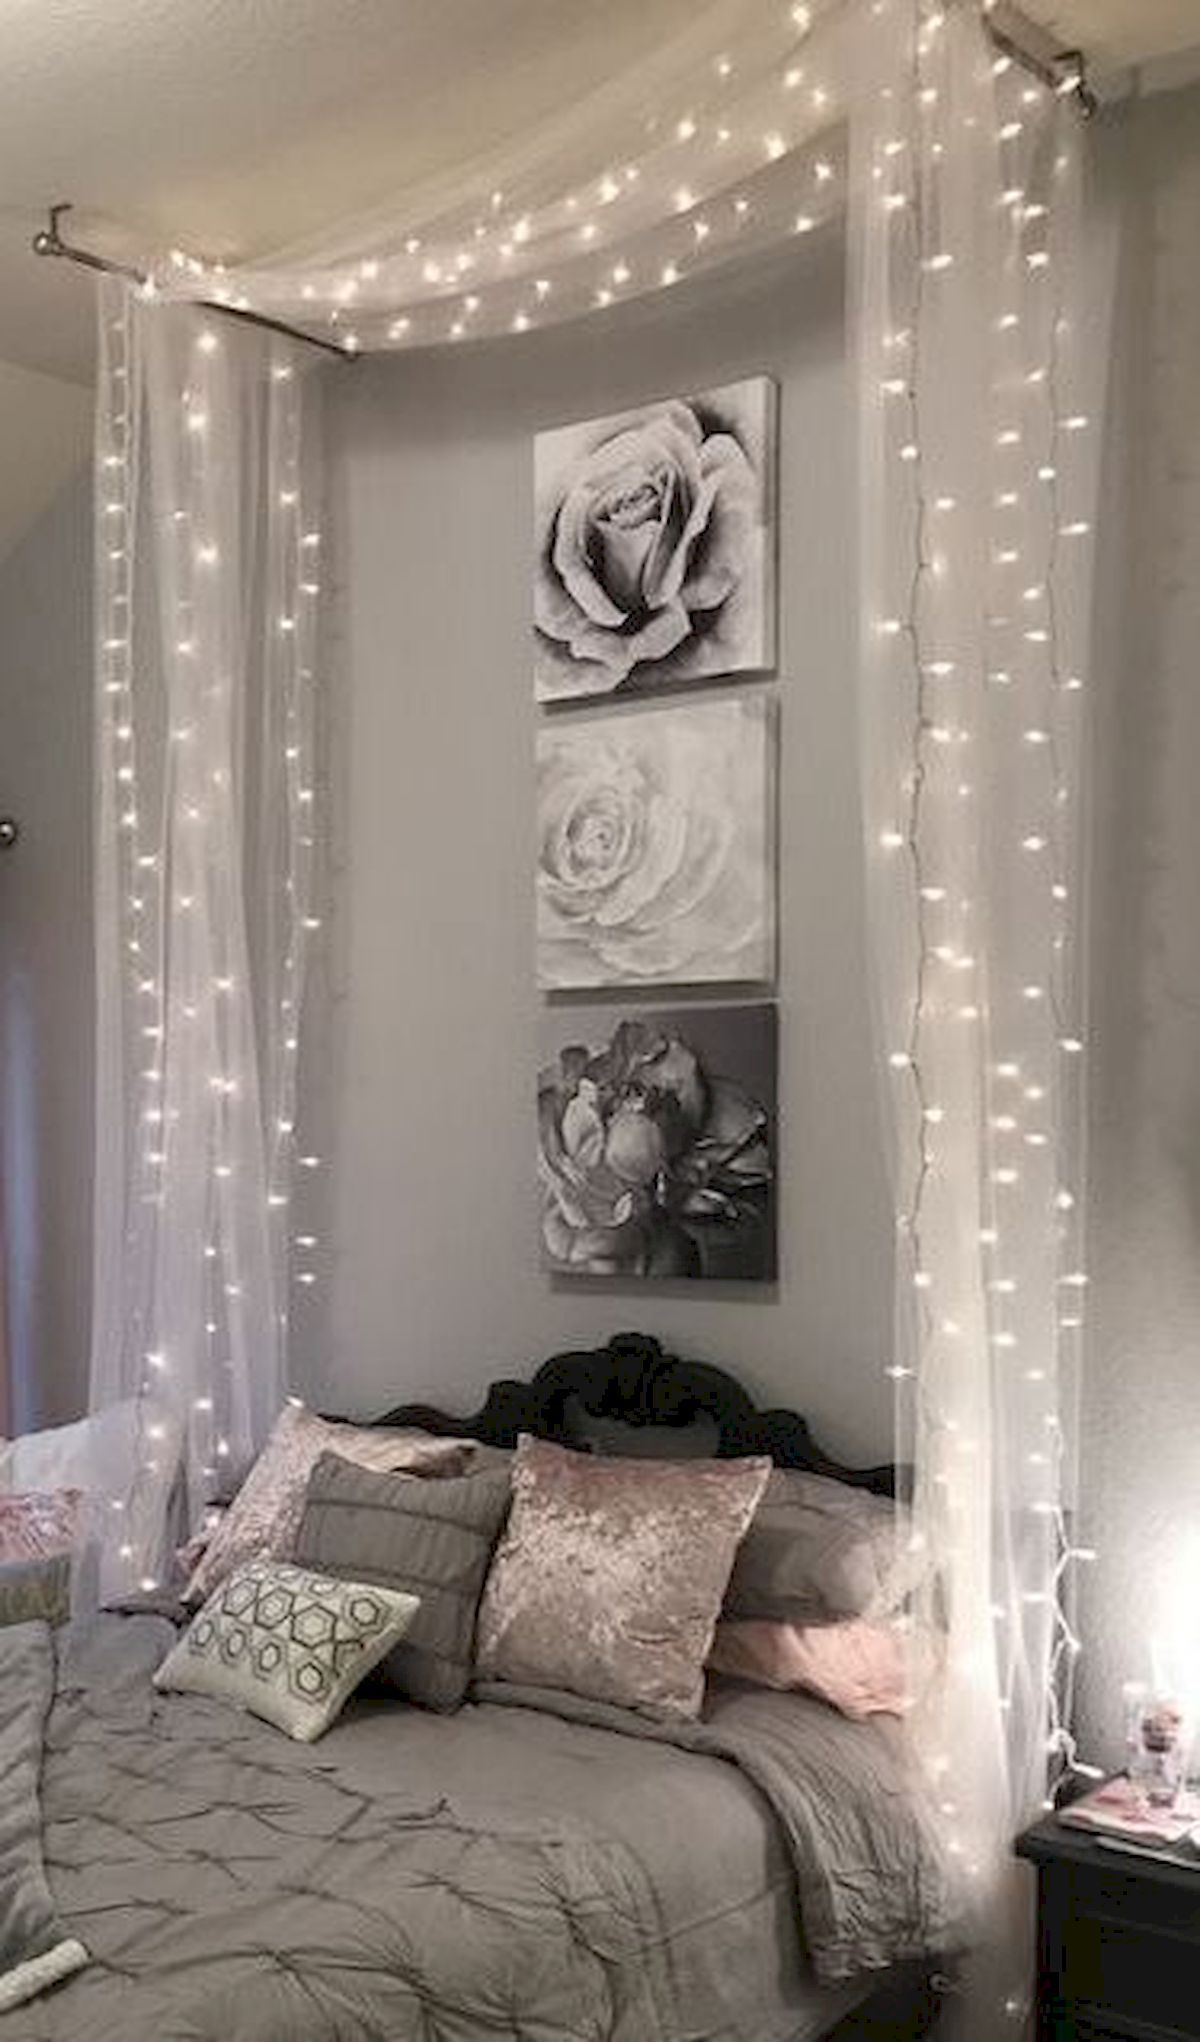 Check Out These Amazing Lighting Tips To Light Up Your Bedroom Diy Bedroom Ideas For Small R In 2020 Relaxing Bedroom Bedroom Decor Lights Comfortable Bedroom Decor